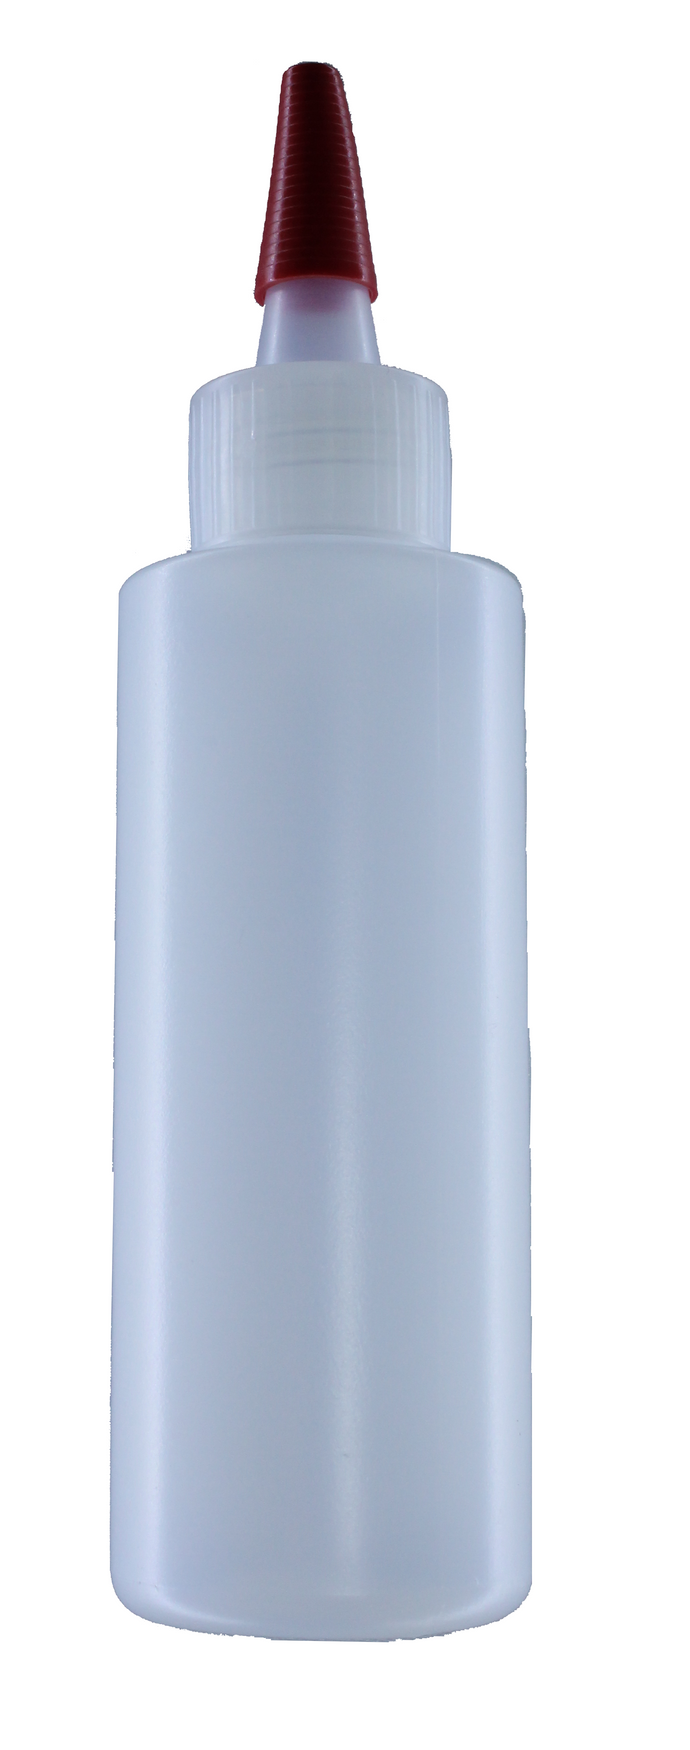 HDPE 120 ml/4oz Natural Cylinder/bottle with yorker